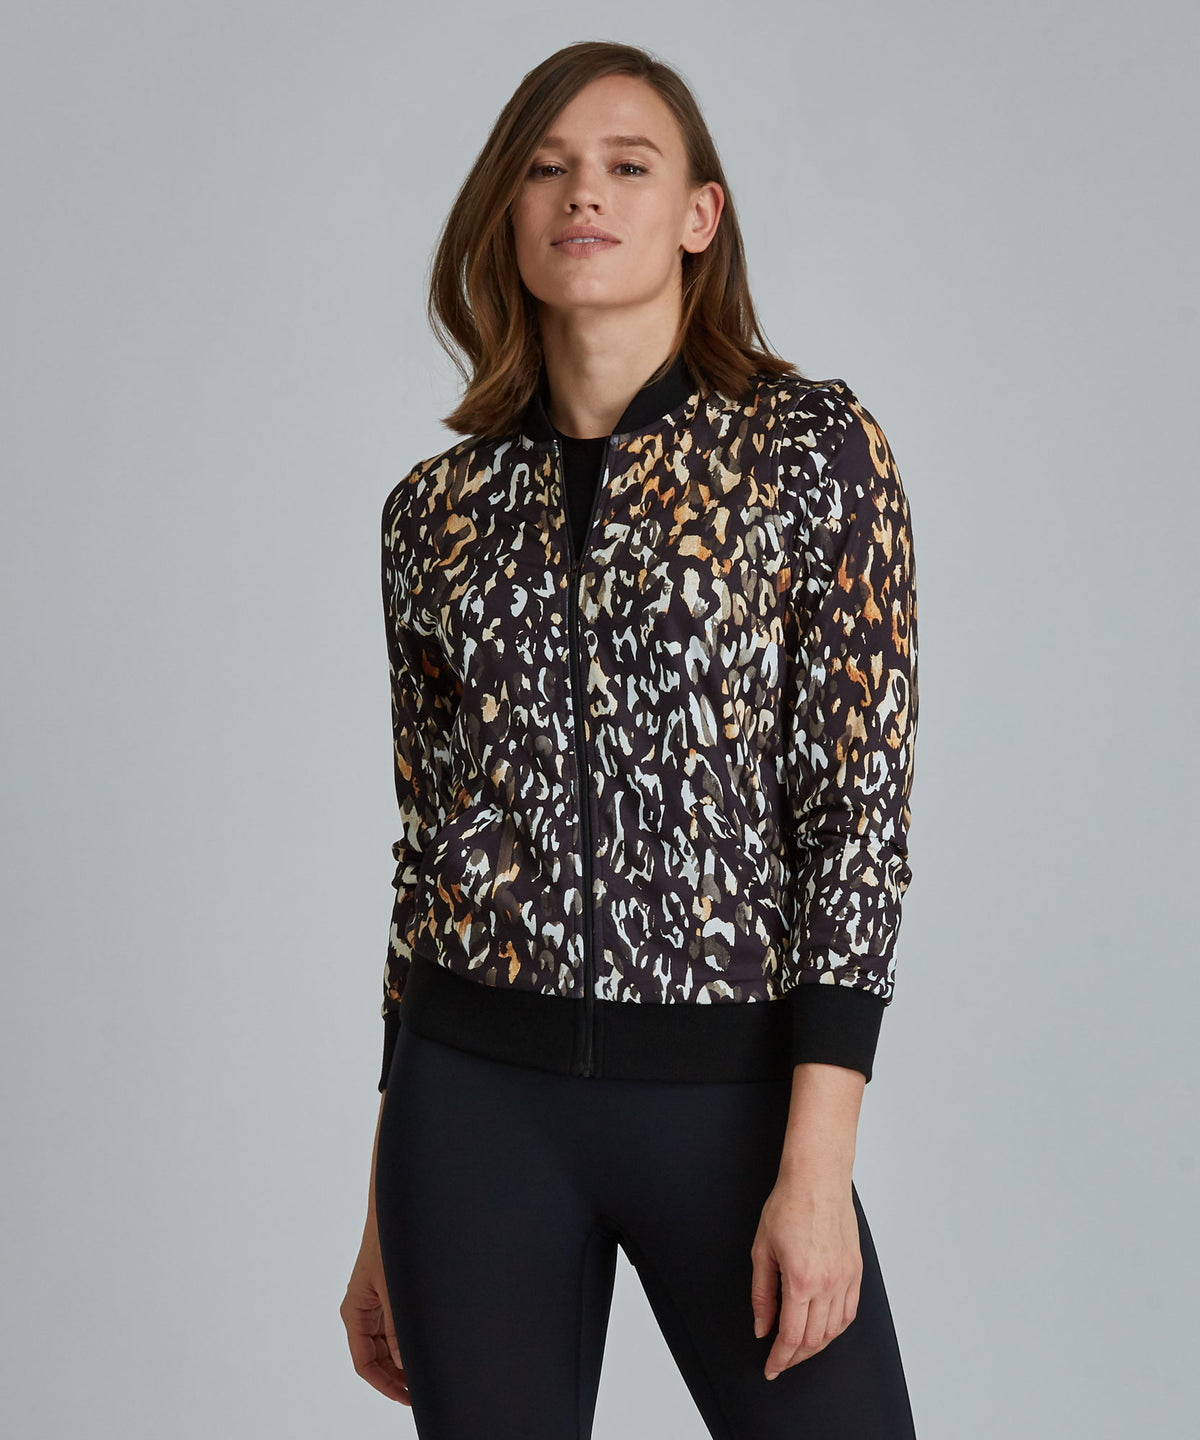 Lindy Jacket - Ombre Cheetah Ombre Cheetah Lindy Bomber Jacket -Women's Activewear Jacket by PRISMSPORT